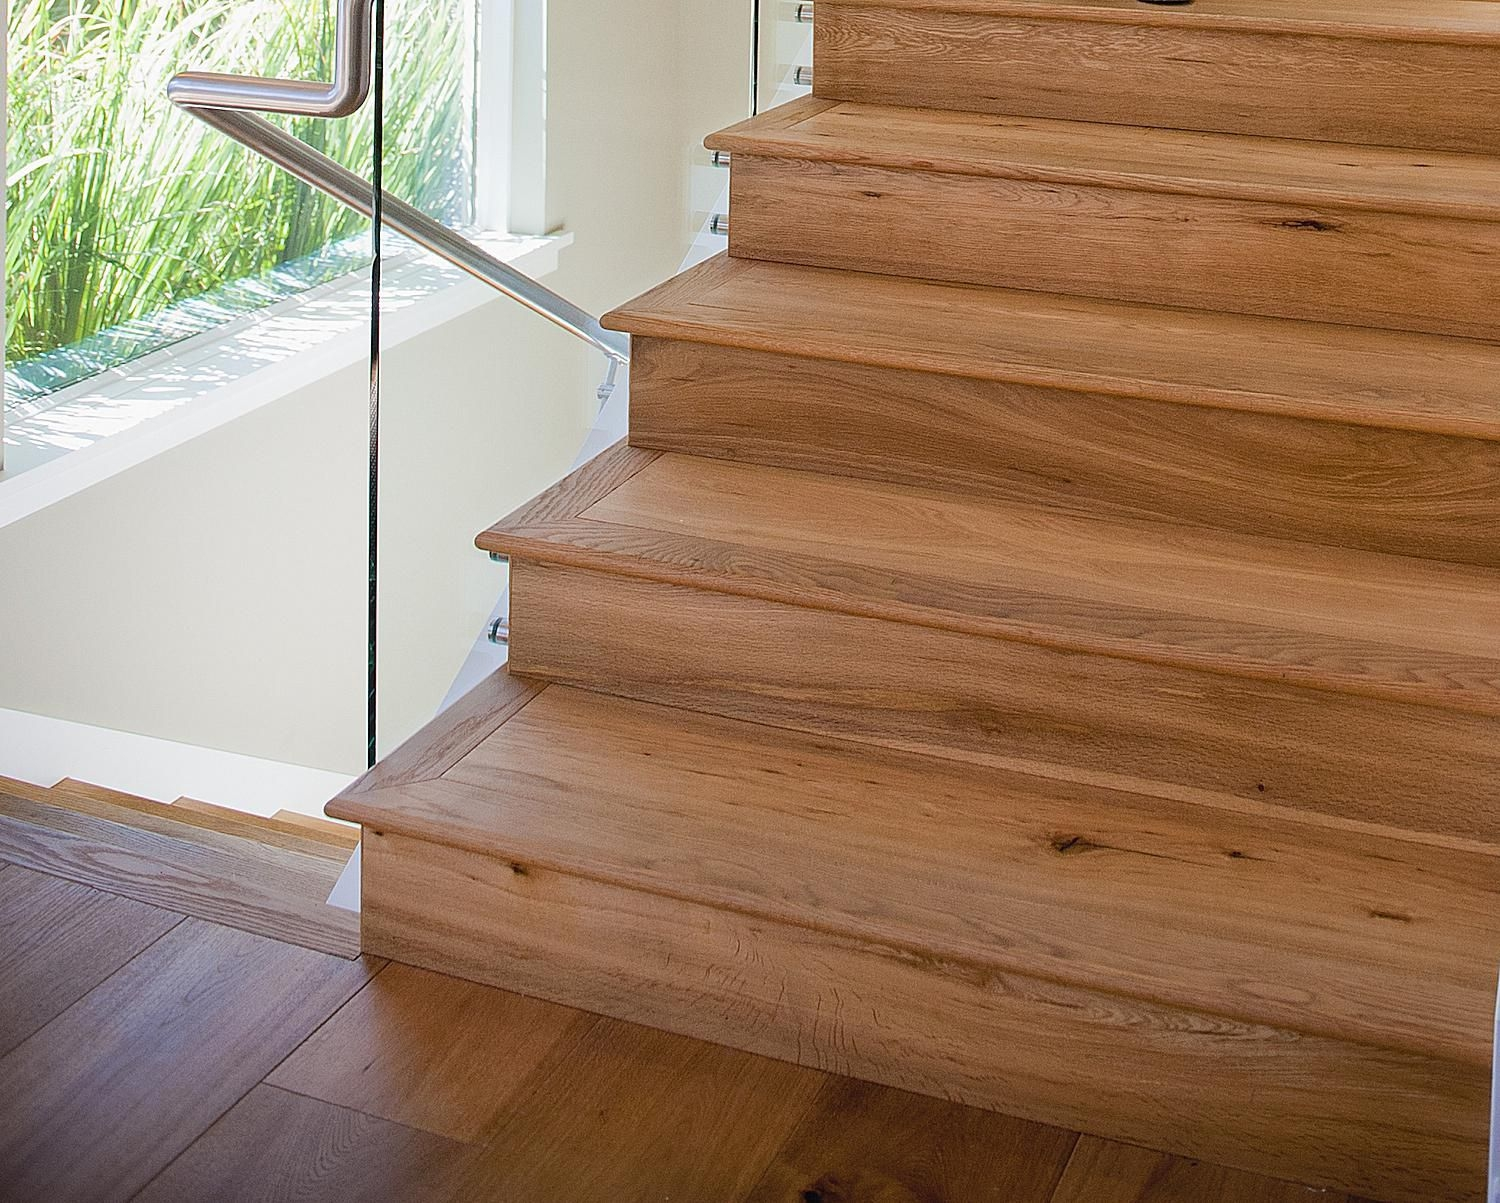 Feng Shui Of Staircase Design | Oro Plata Mata Stairs Design | Building | Superstitious Beliefs | Landing | Superstitions | Feng Shui Tips